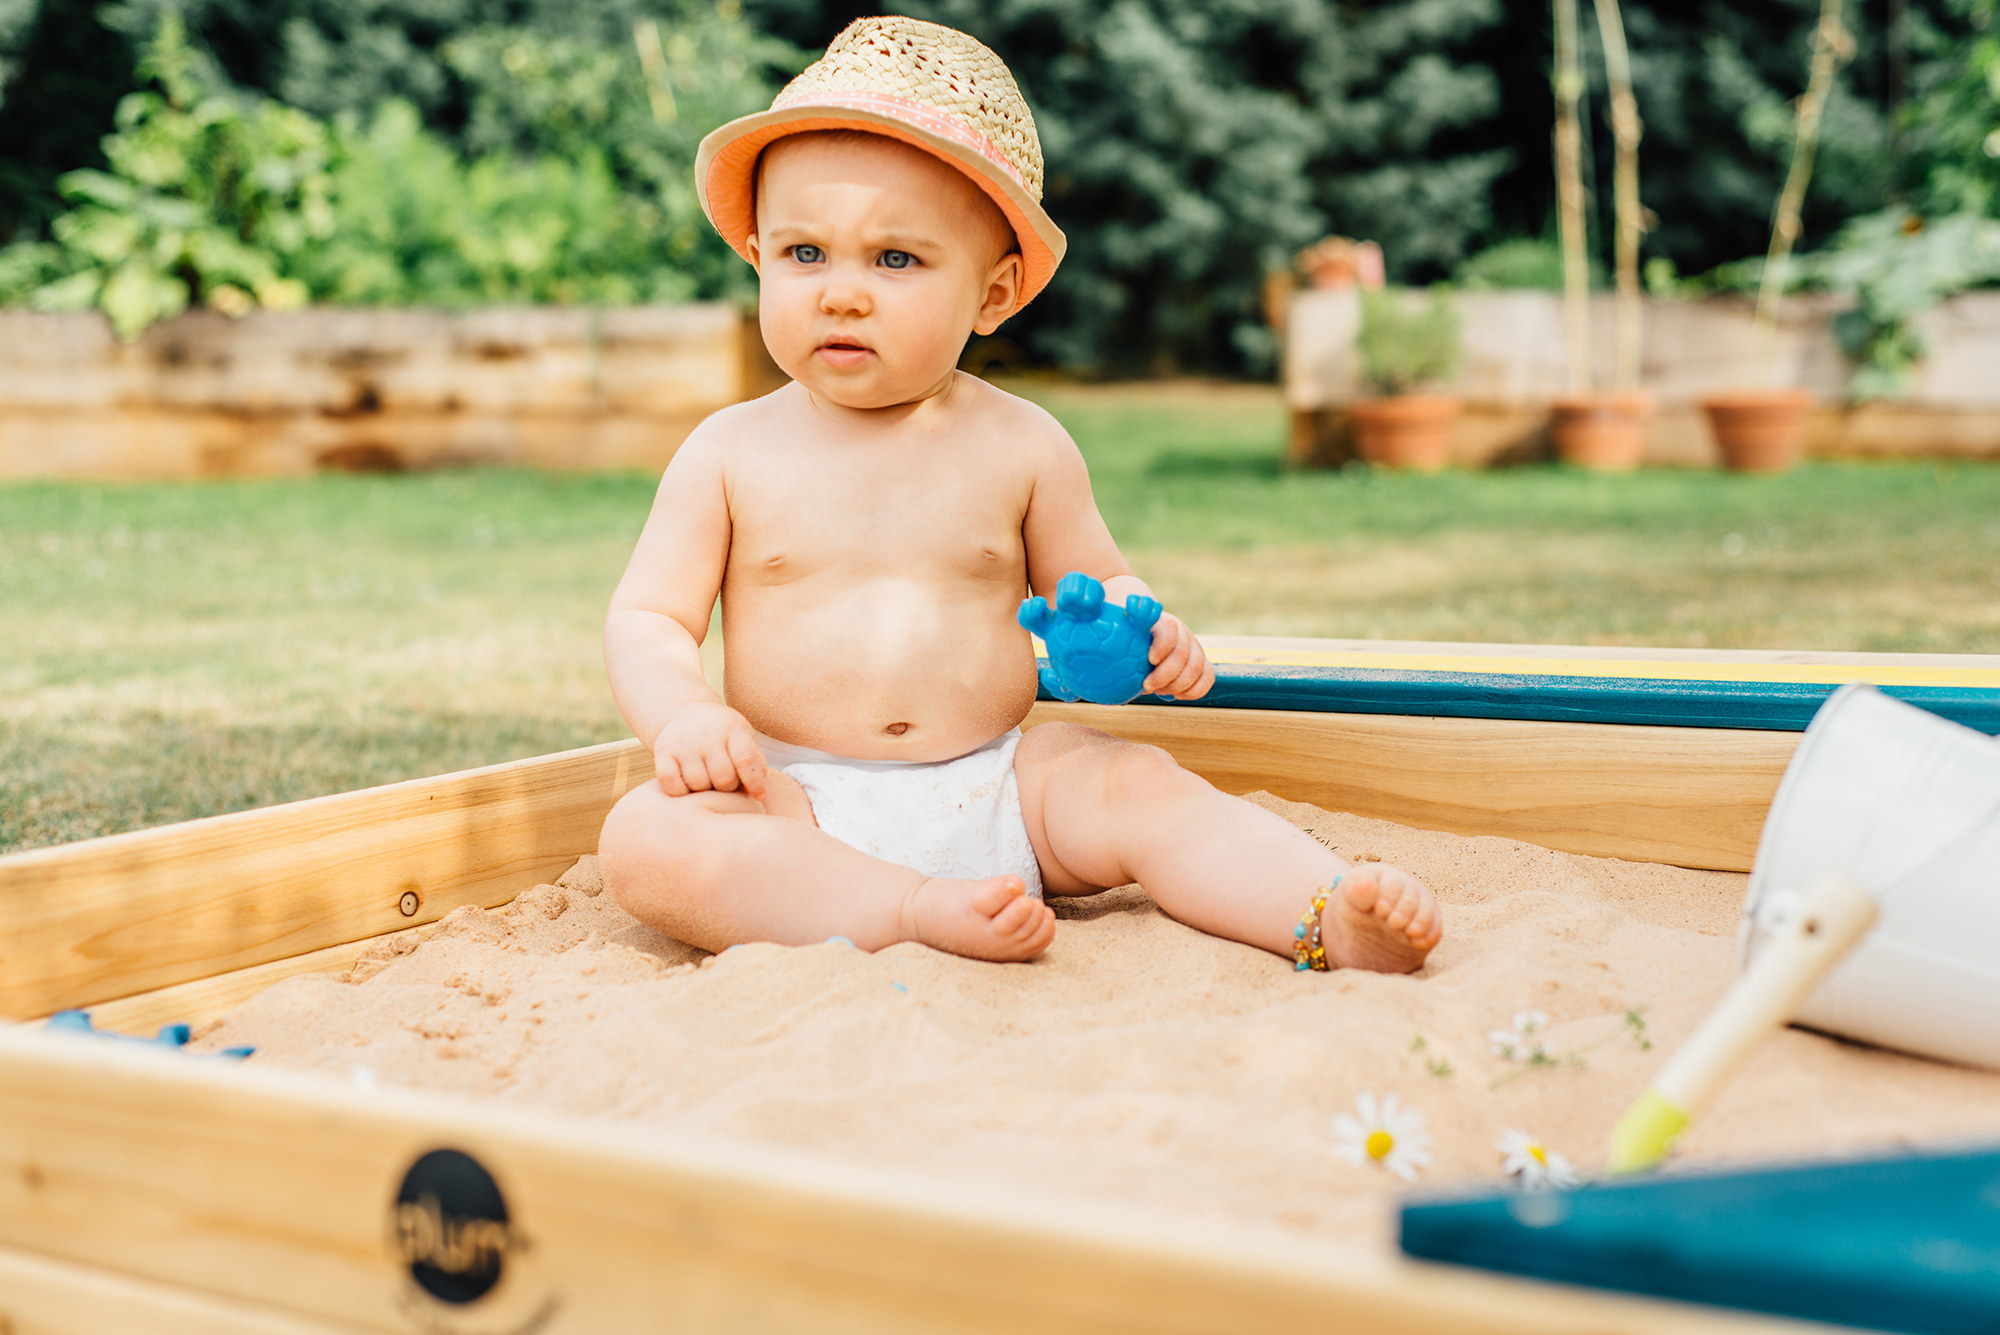 A baby in the sandbox